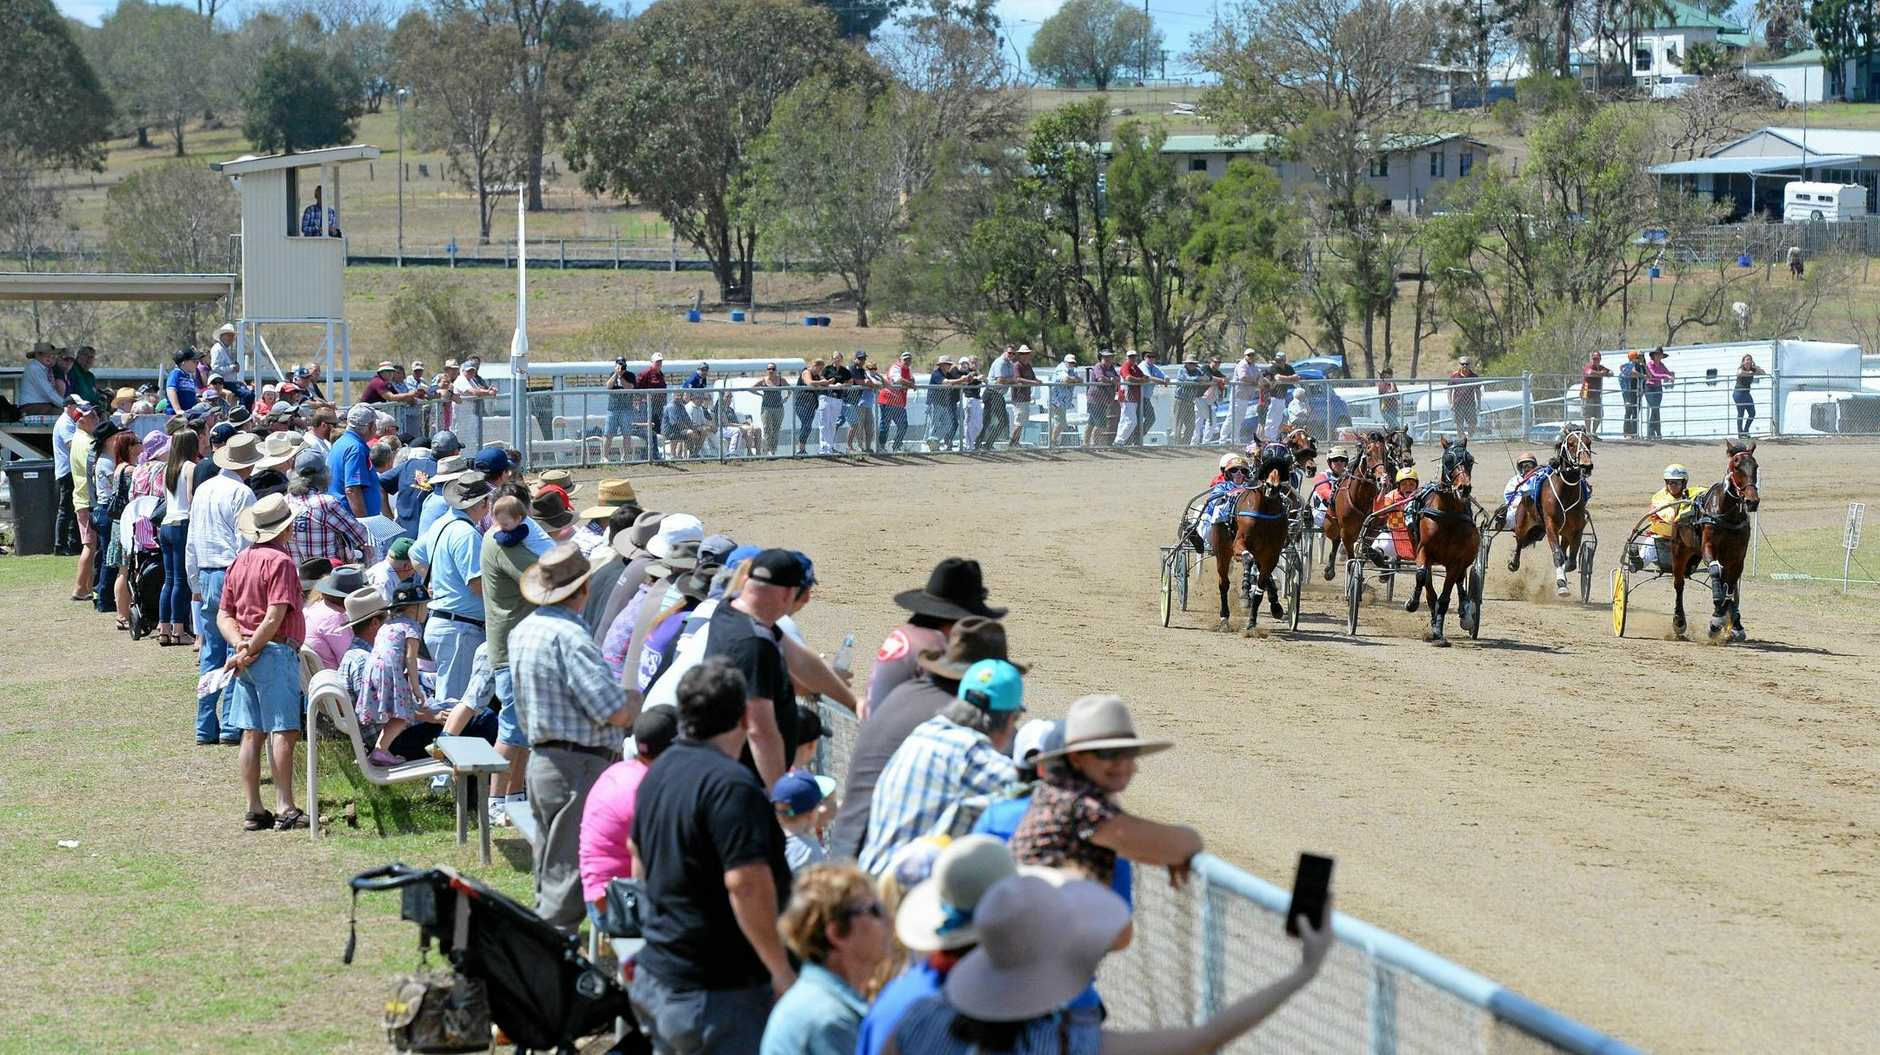 Trotting fans line the fence watching the runners at last Monday's Marburg Pacing Association TAB meeting.